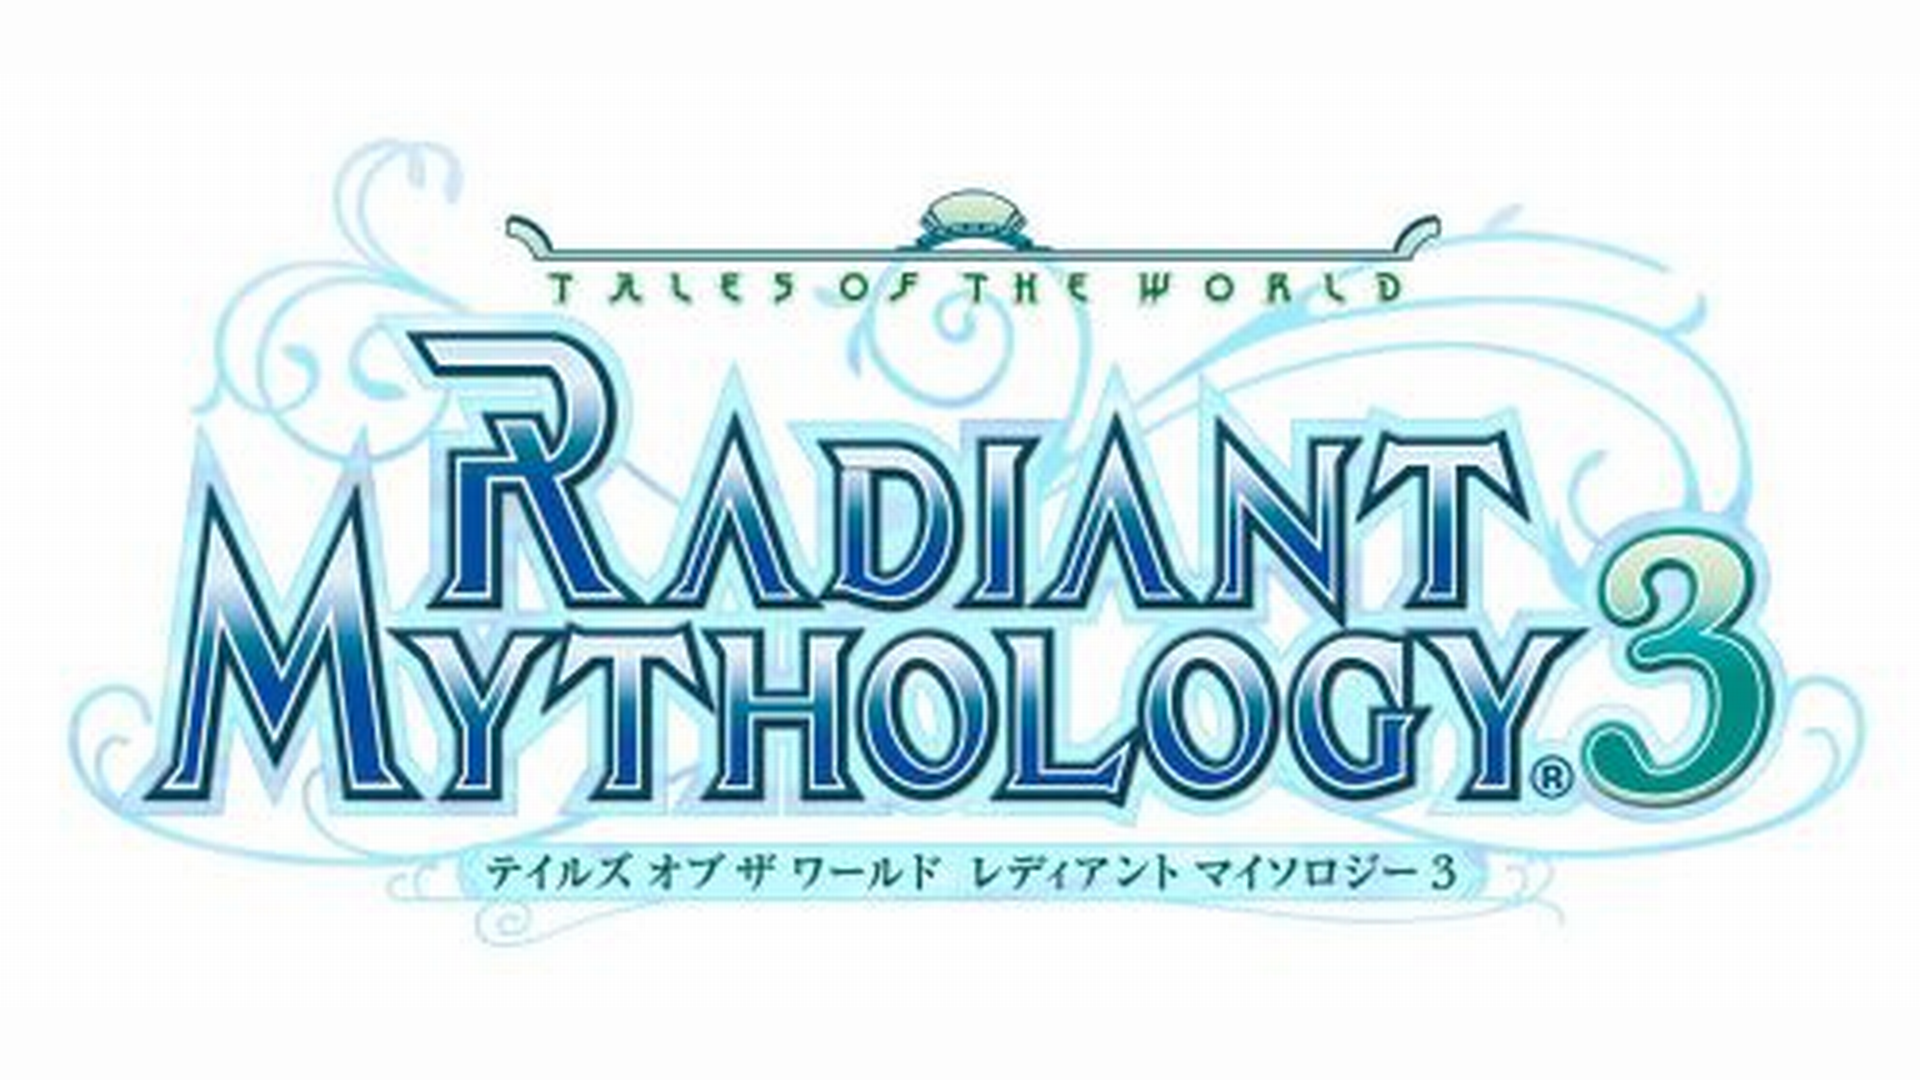 Tales of the World: Radiant Mythology 3 Logo